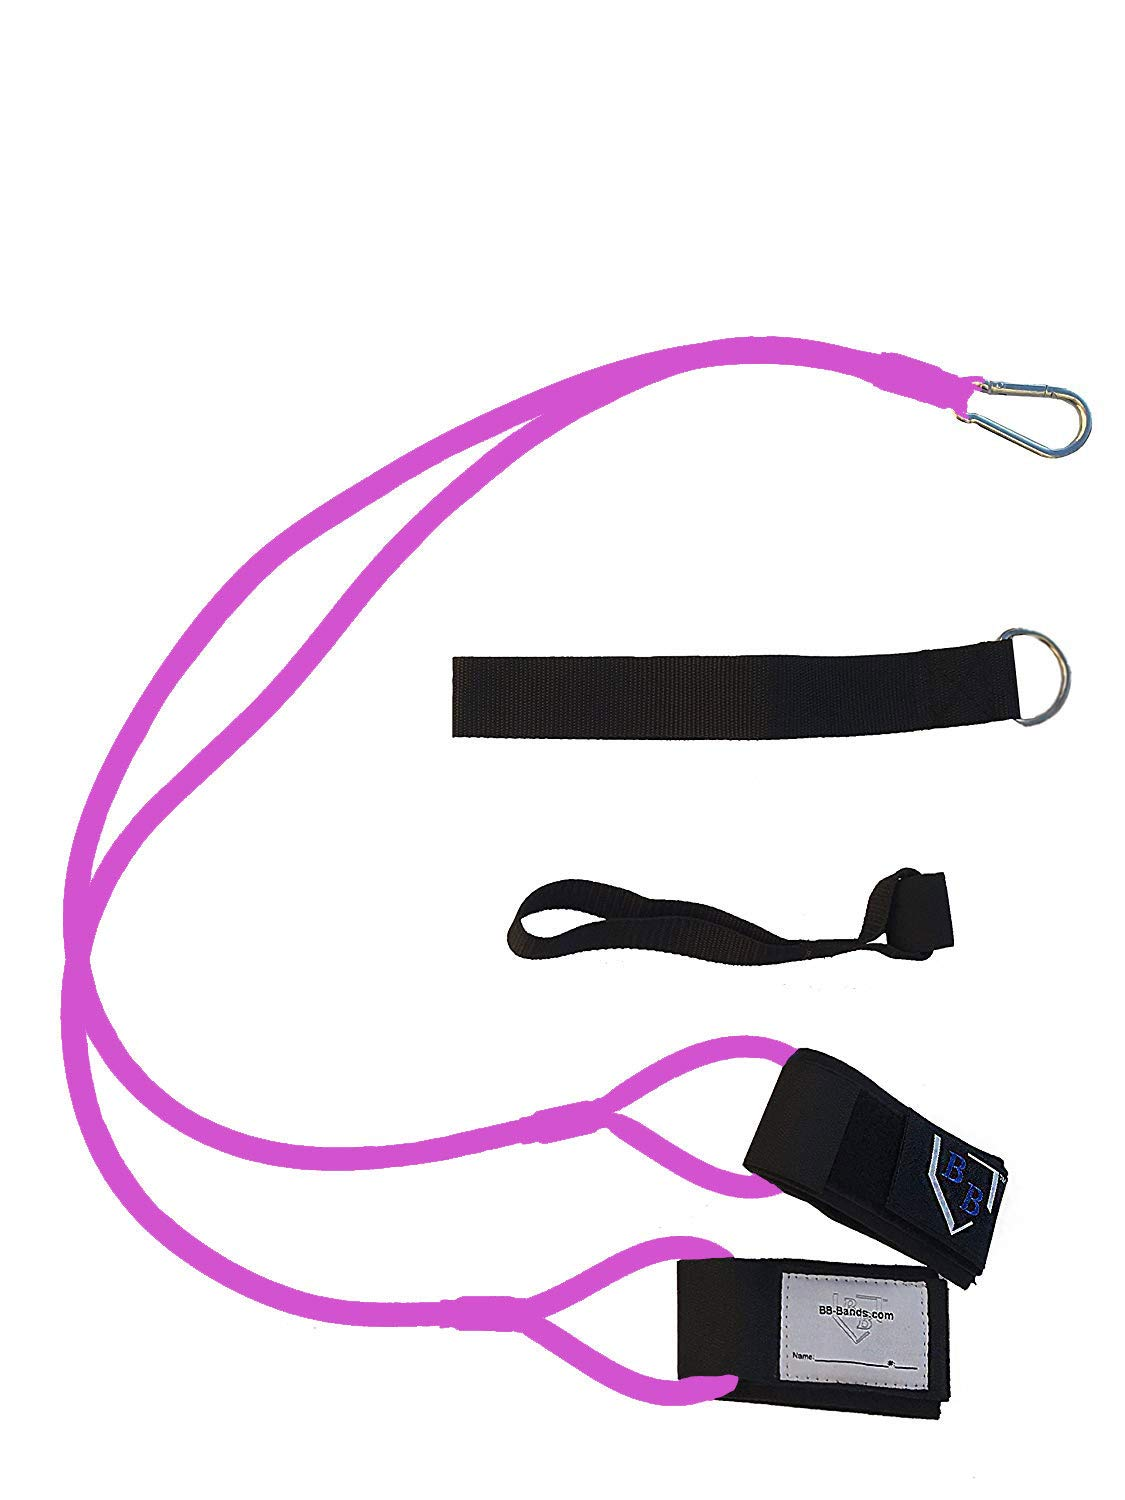 BB-Bands Sports Exercise Baseball/Softball Training Aid Pitching Arm Strength Quarterback Warmup Stretching Resistance Bands j (Pink, Adult)